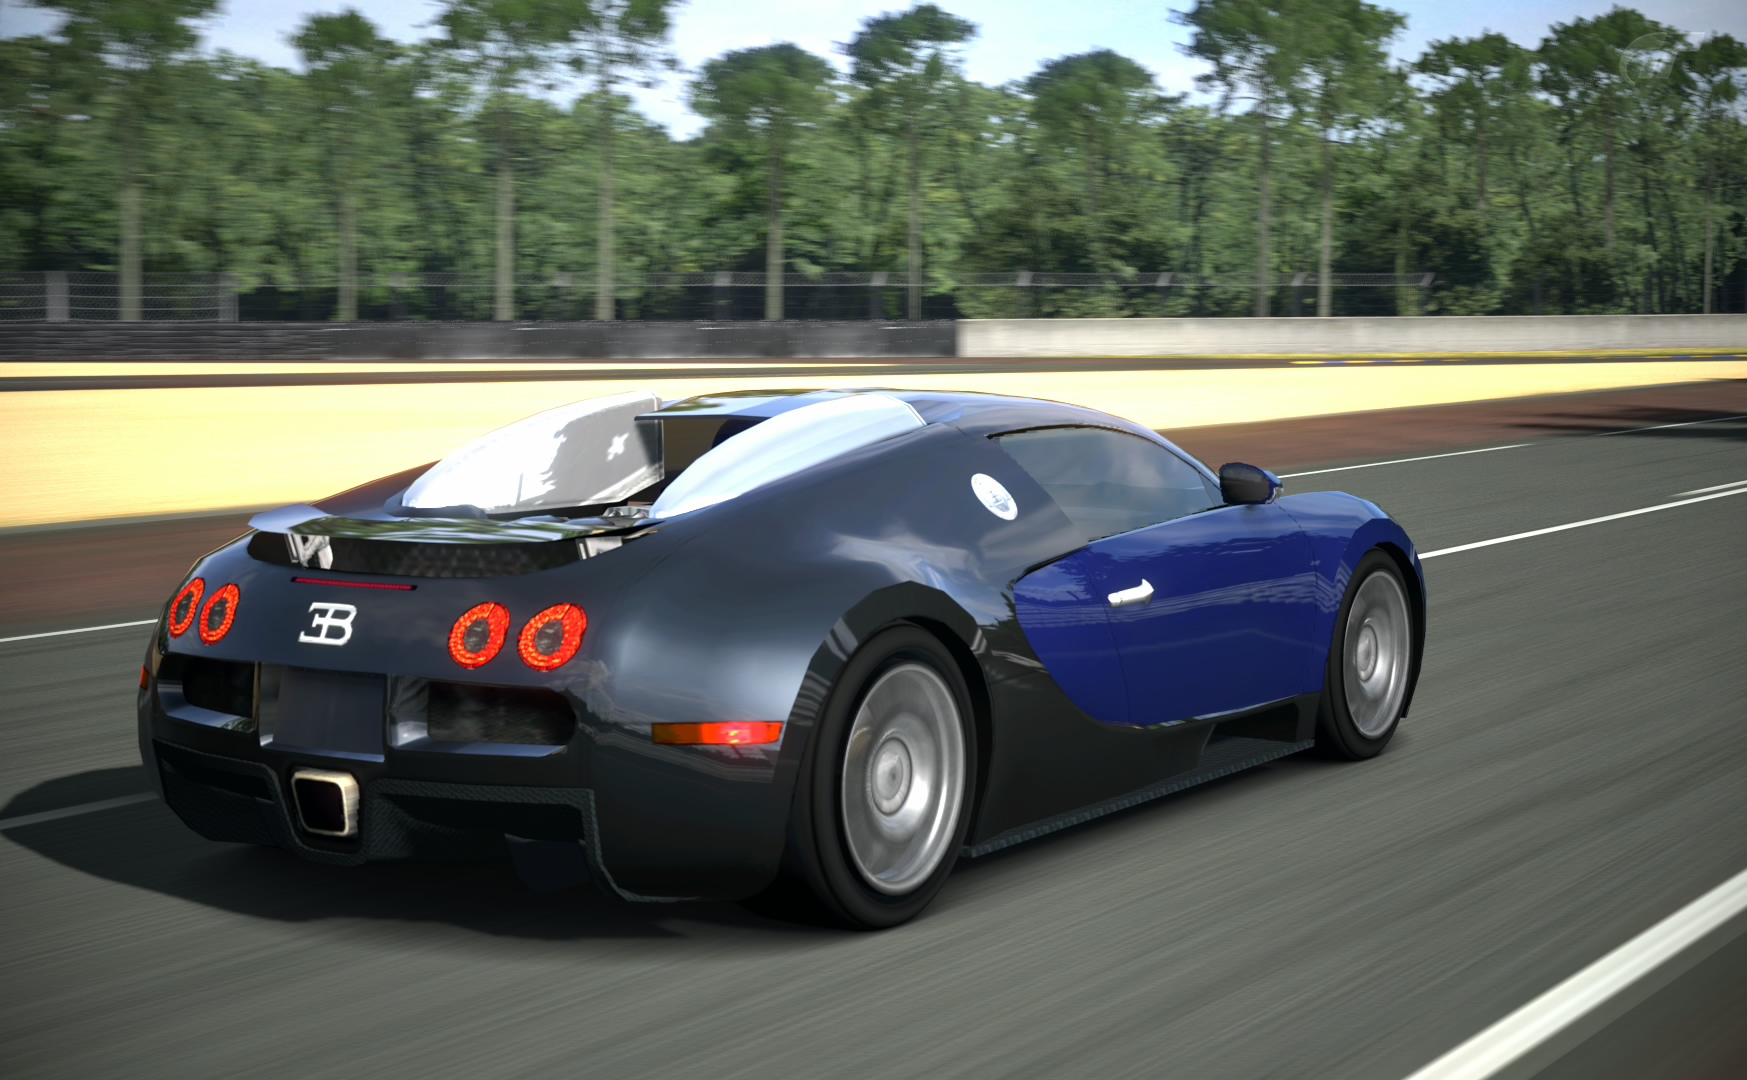 bugatti veyron quarter mile speed 1 4 mile drag race bugatti veyron vs nissan gt r bugatti. Black Bedroom Furniture Sets. Home Design Ideas